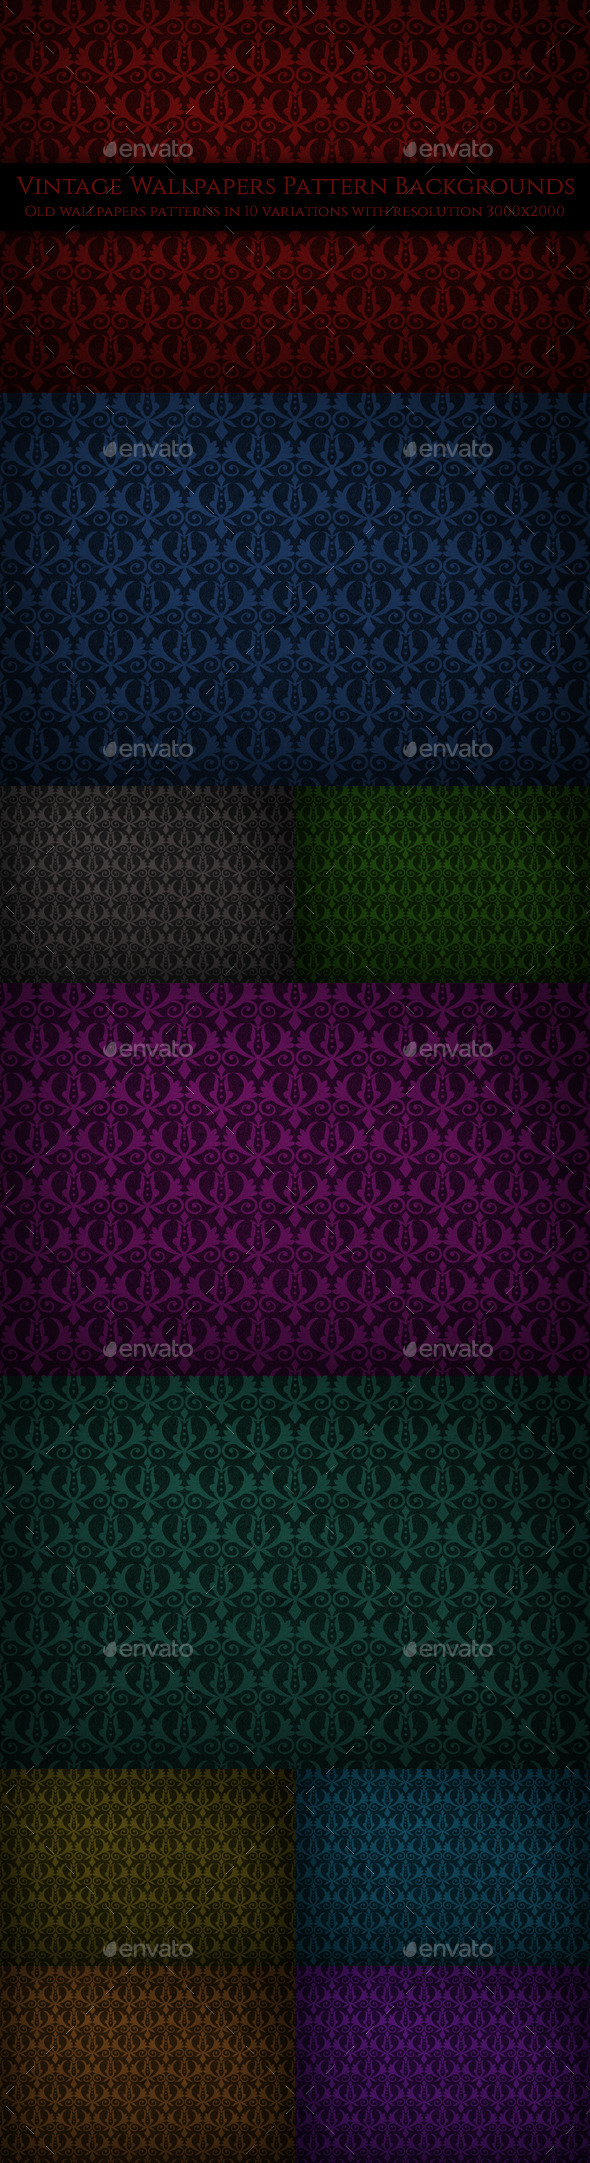 GraphicRiver Vintage Wallpapers Pattern Backgrounds 10454728